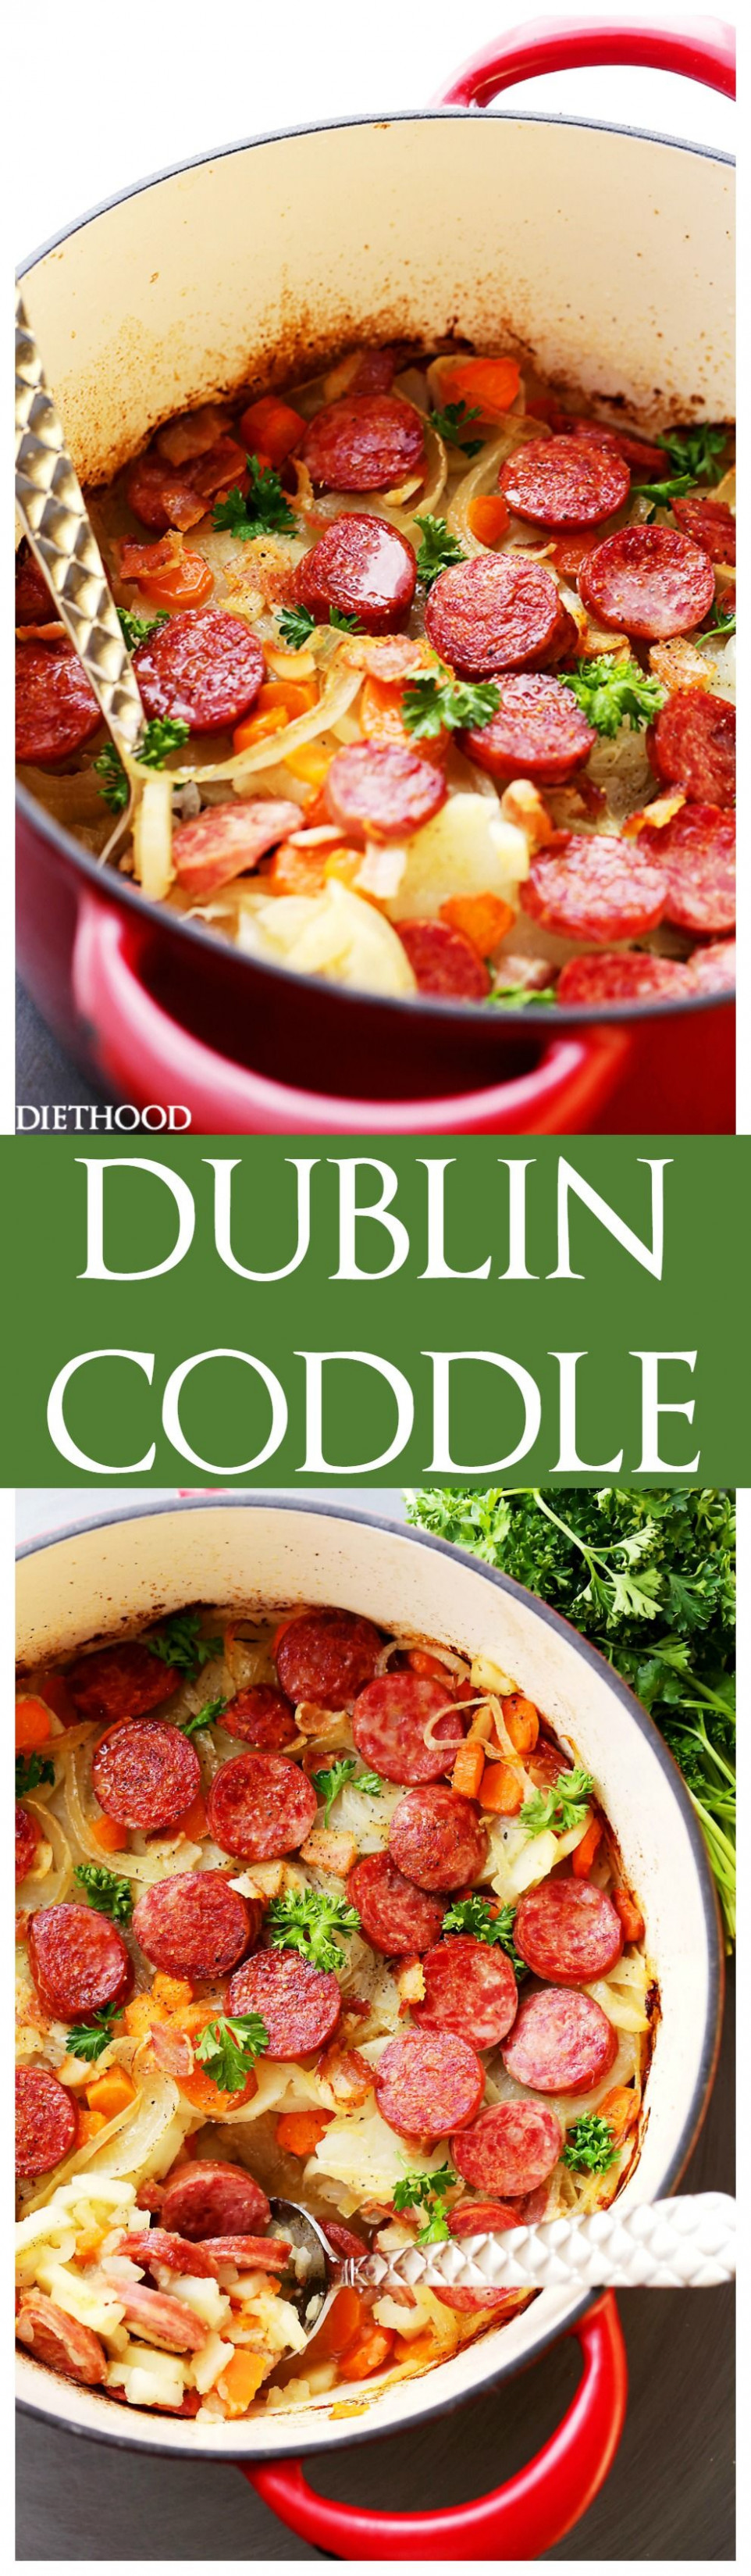 Dublin Coddle Recipe - An easy to make delicious and ...